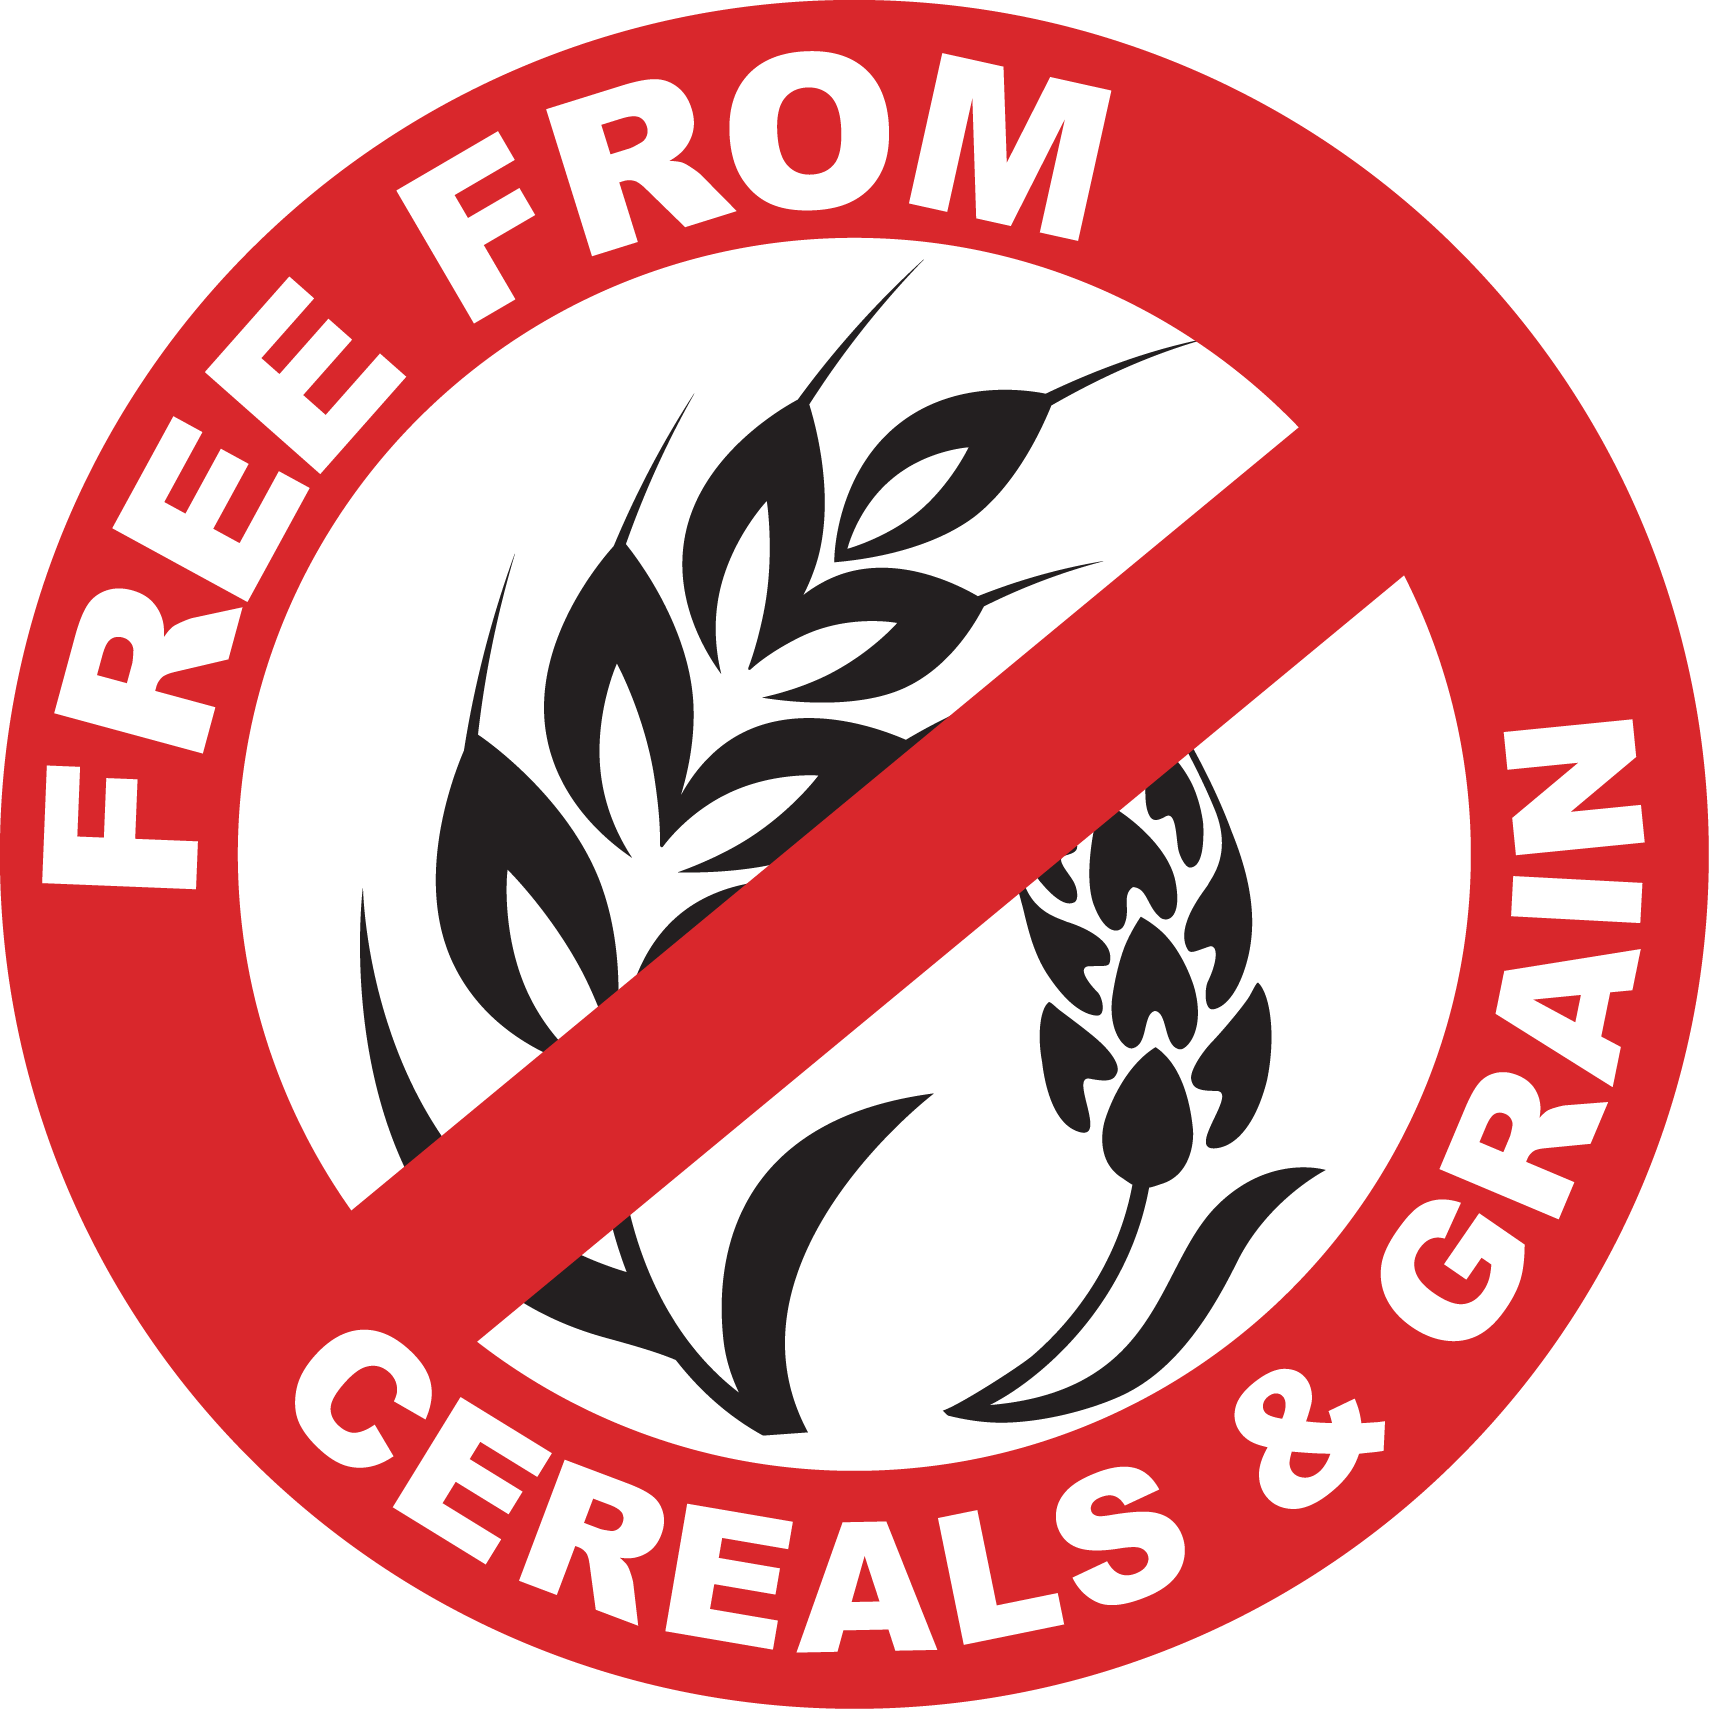 free from cereals and grains